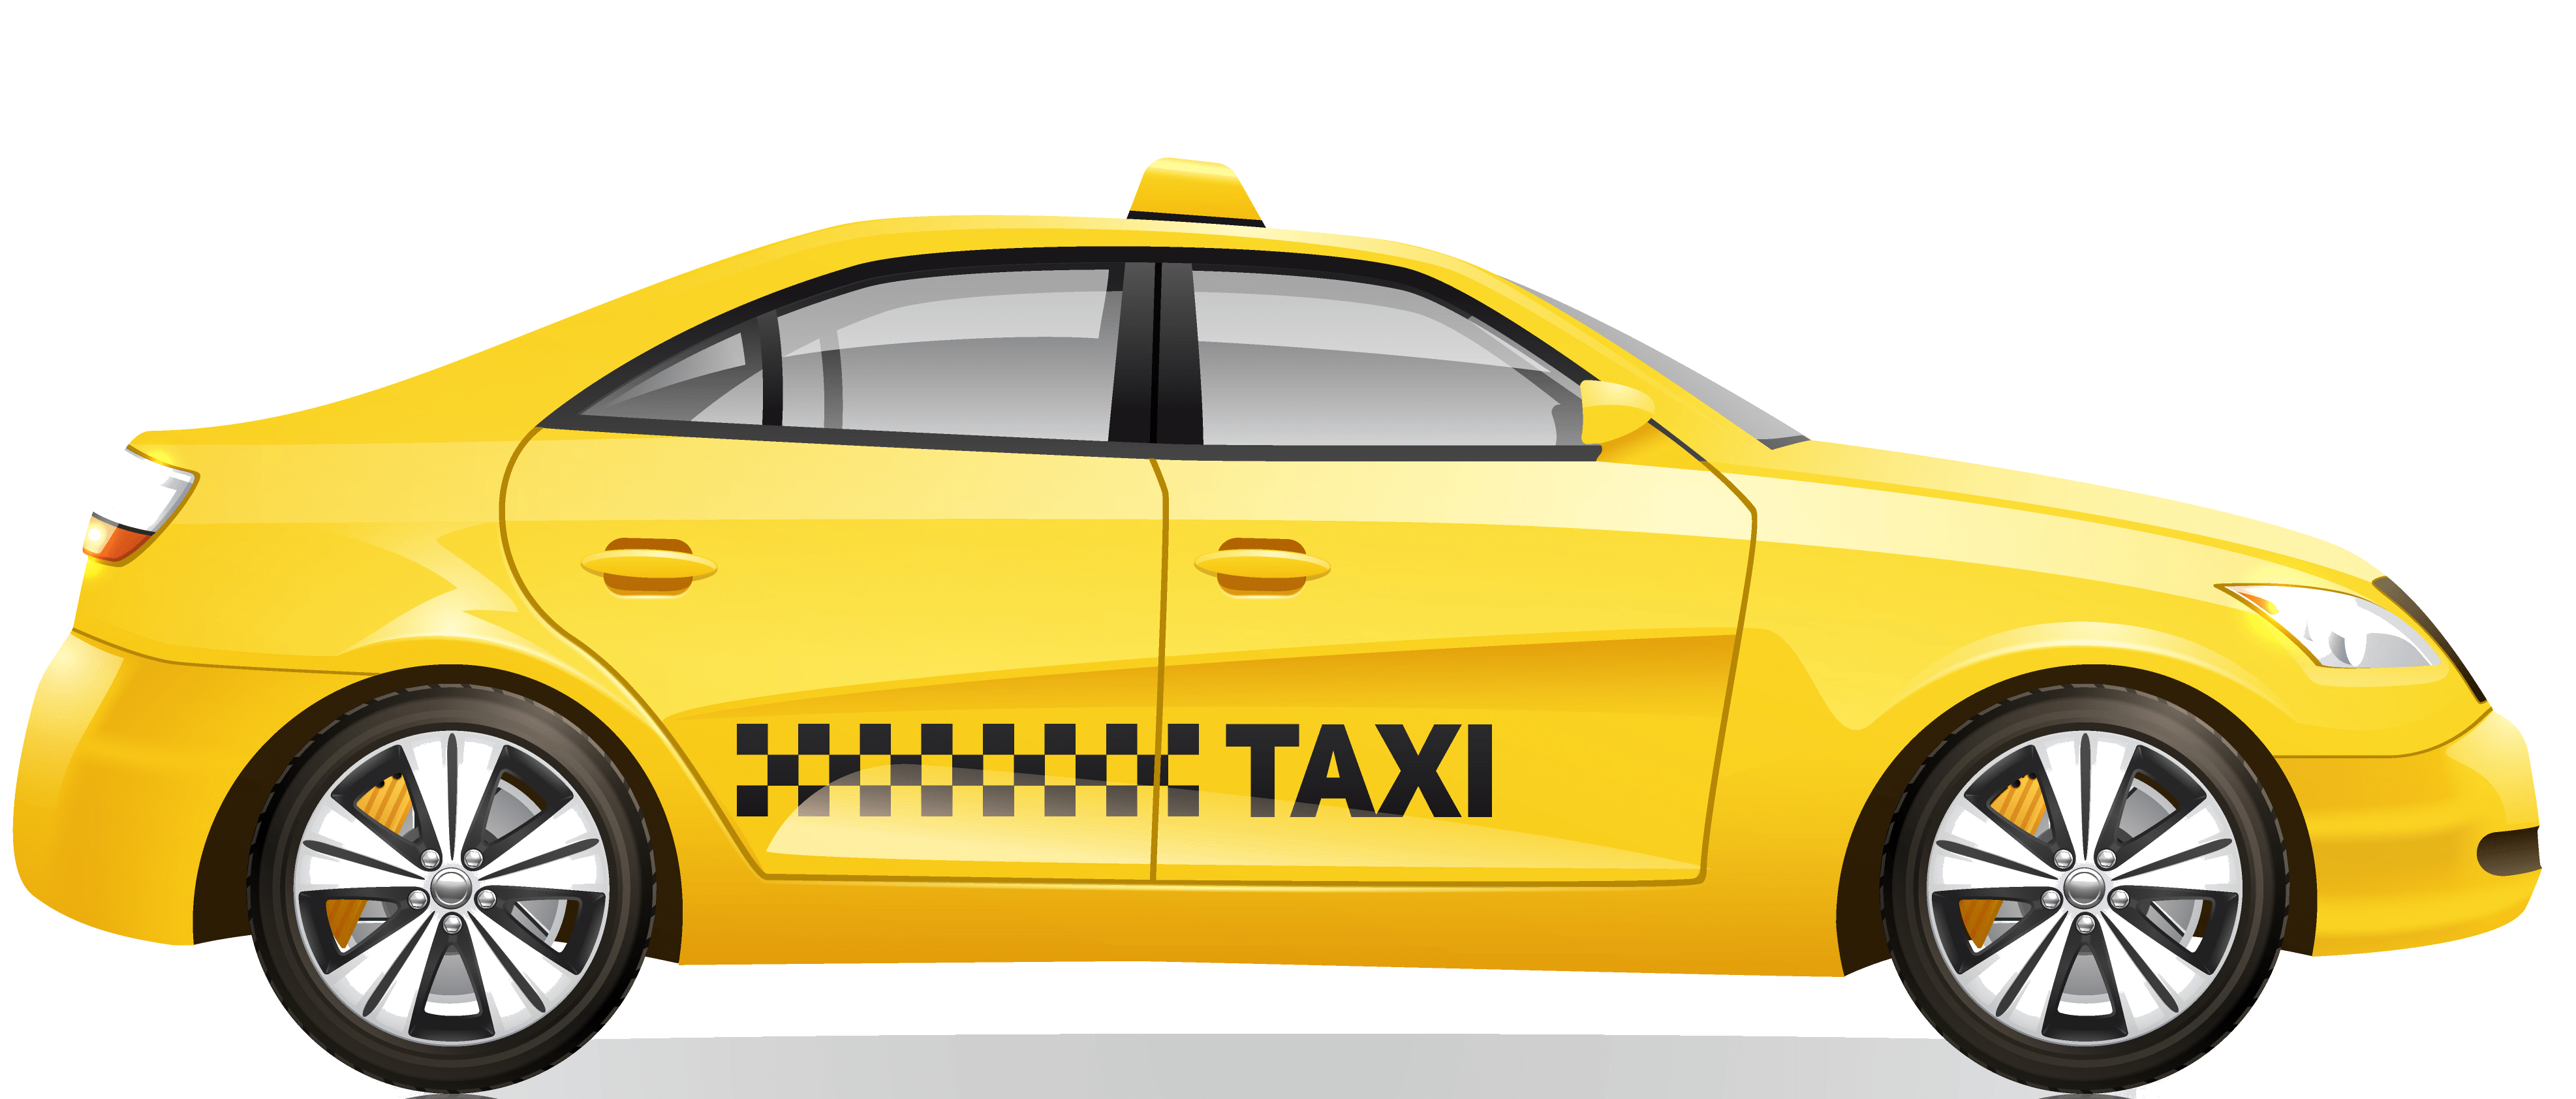 icone trajets taxi